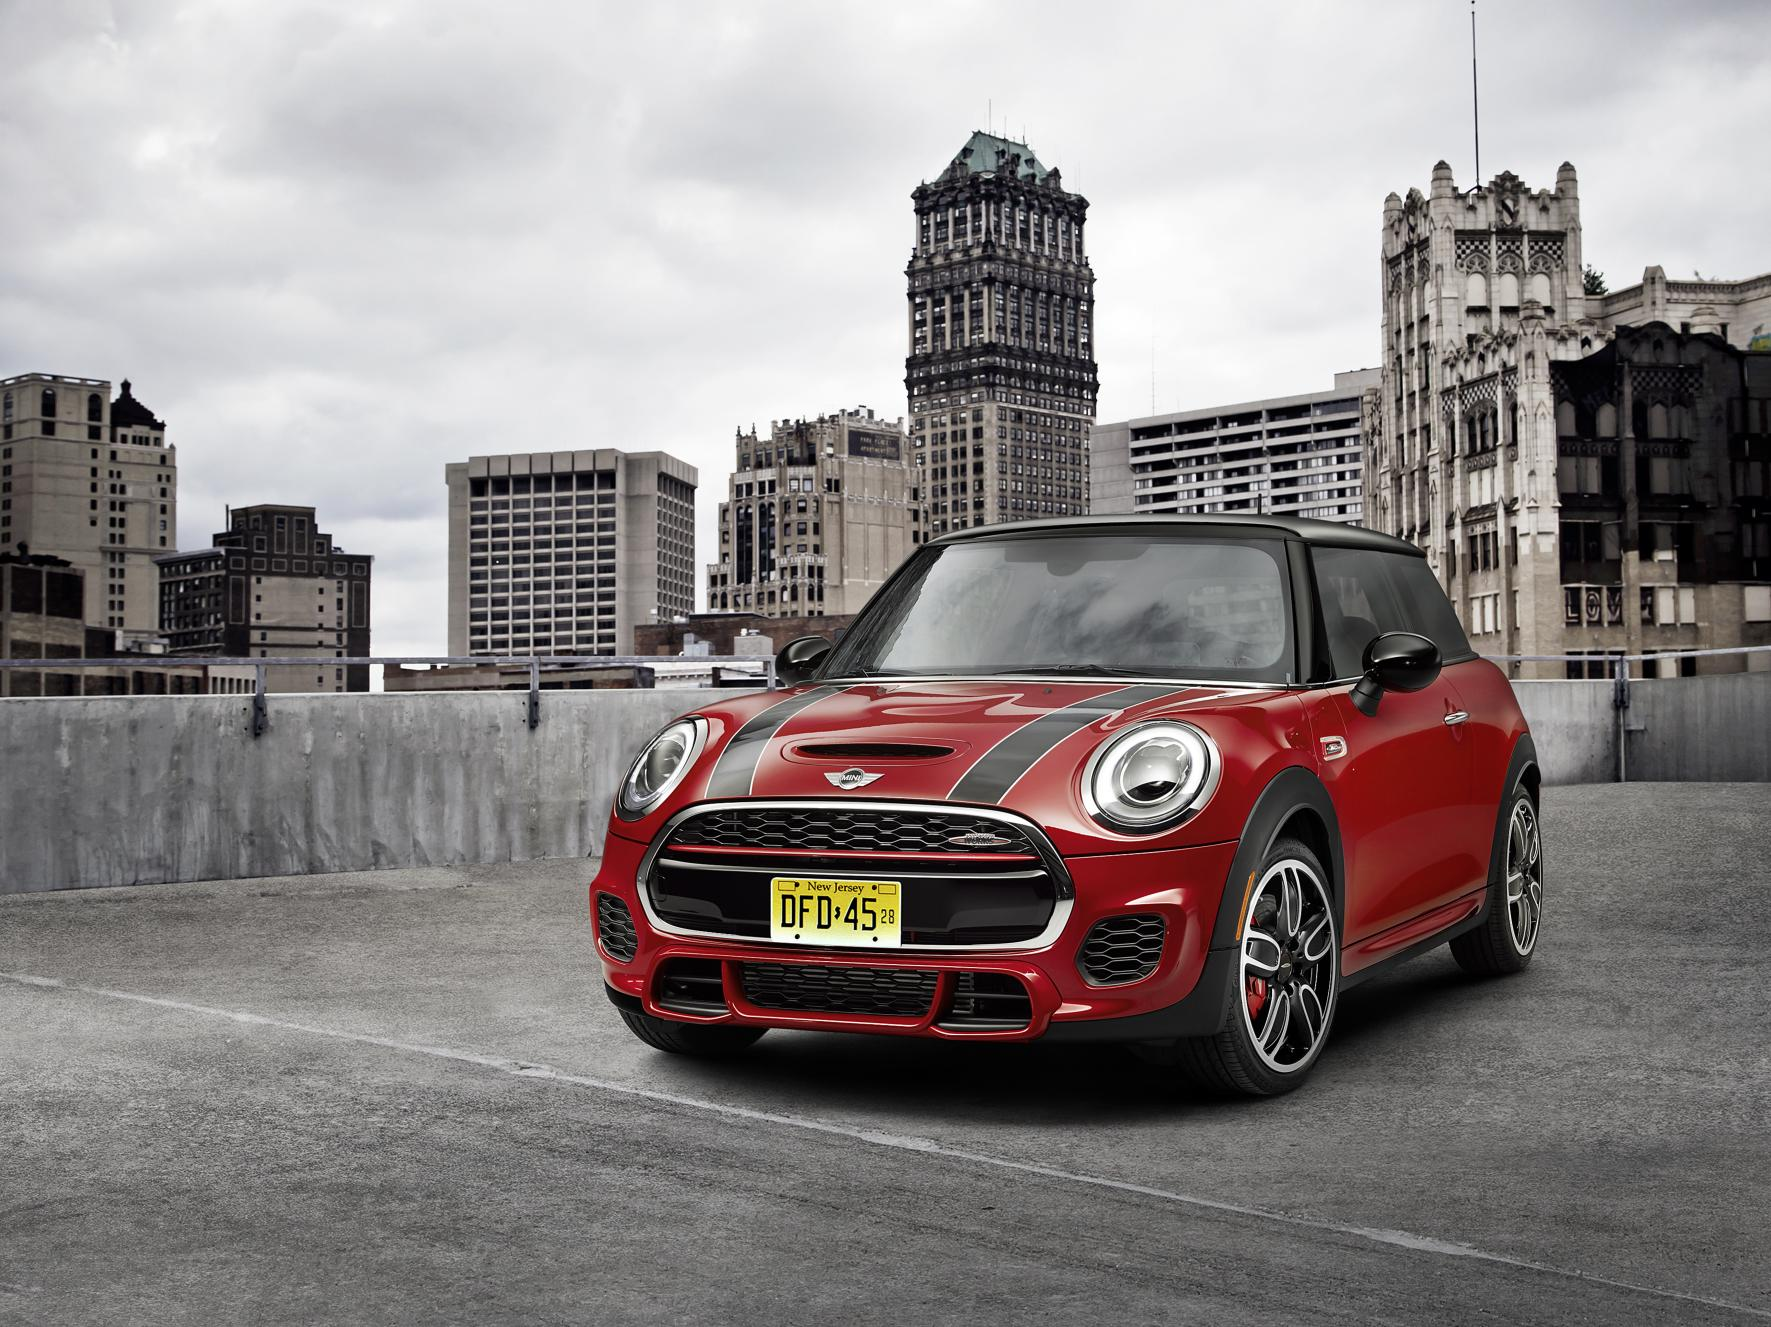 Mini Cooper Price >> News - 2015 Mini John Cooper Works Price and Specs